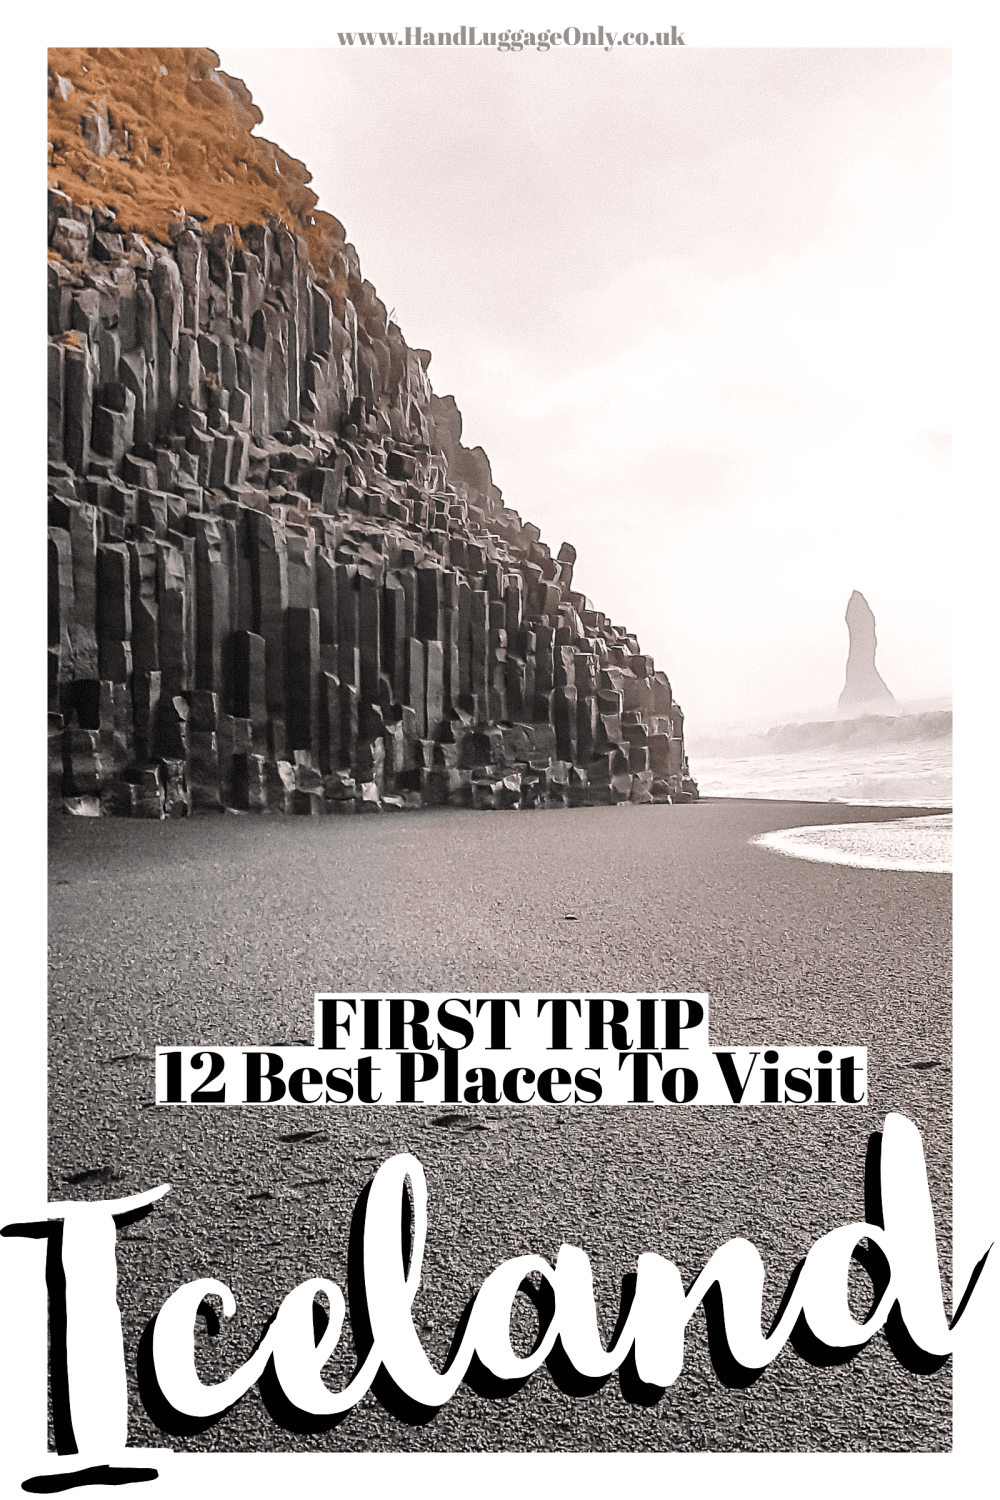 Best Things To Do On A First Trip To Iceland